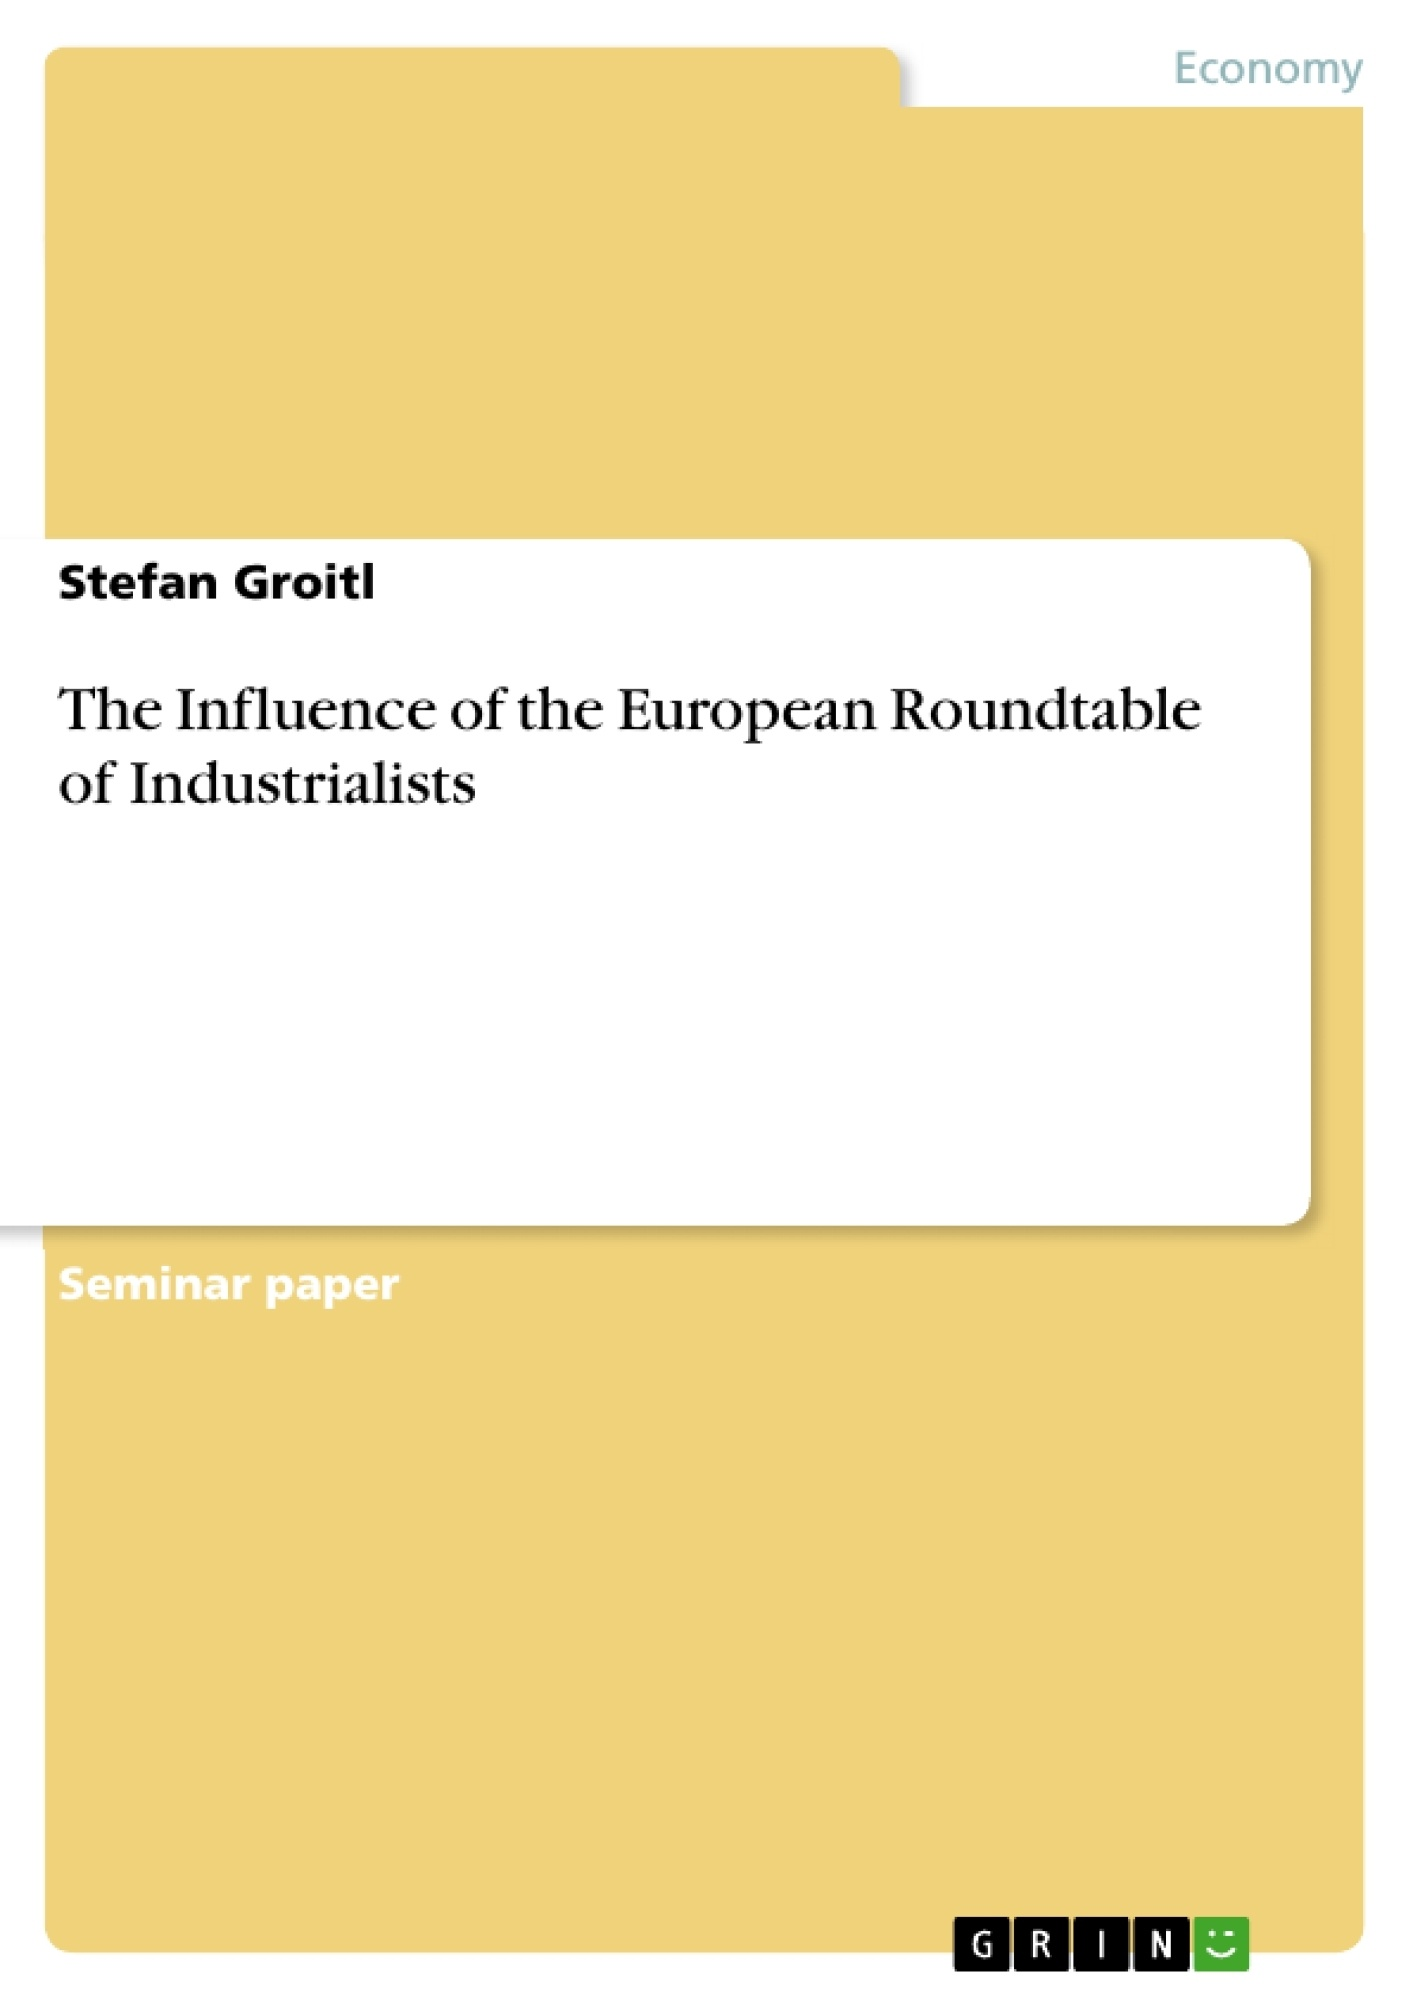 Title: The Influence of the European Roundtable of Industrialists